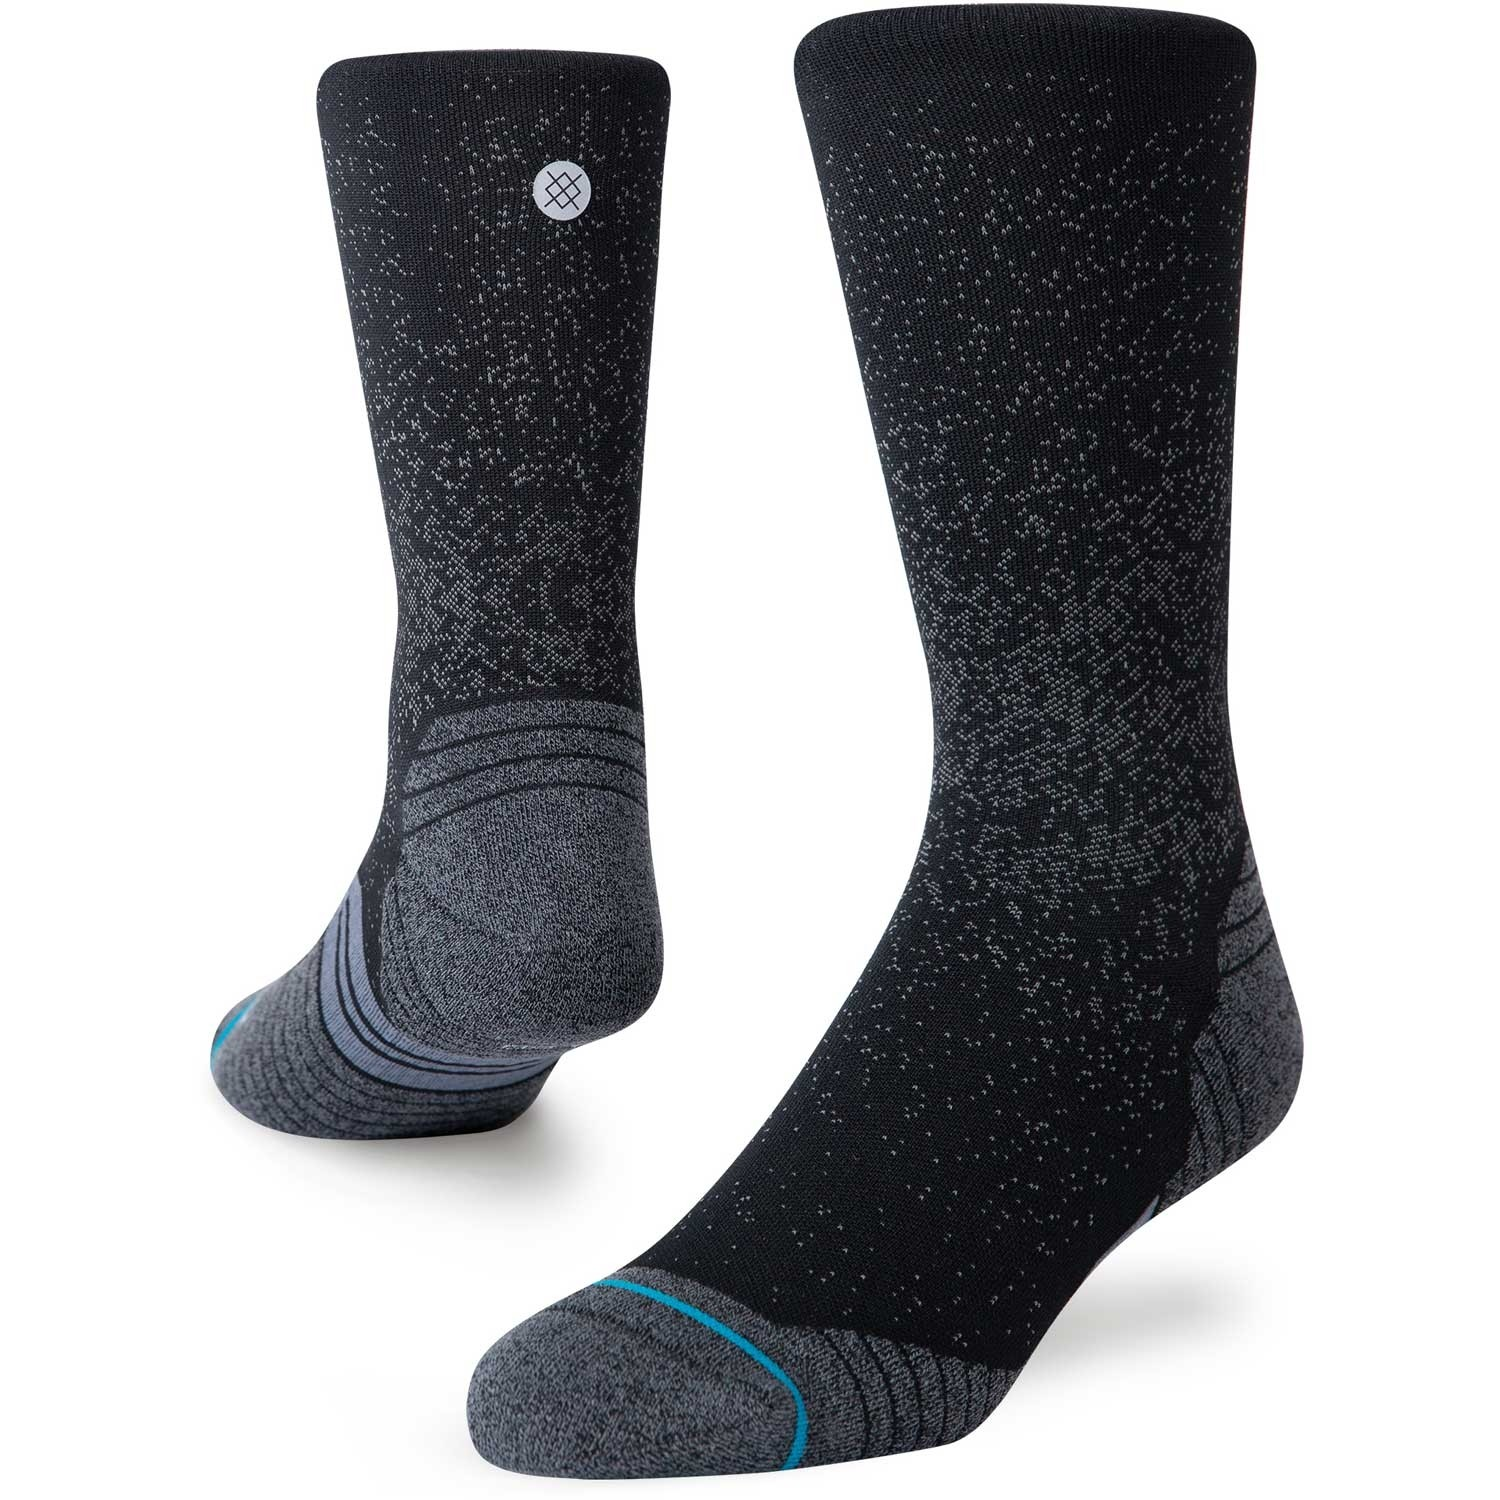 Stance Run Crew St Socks - Black